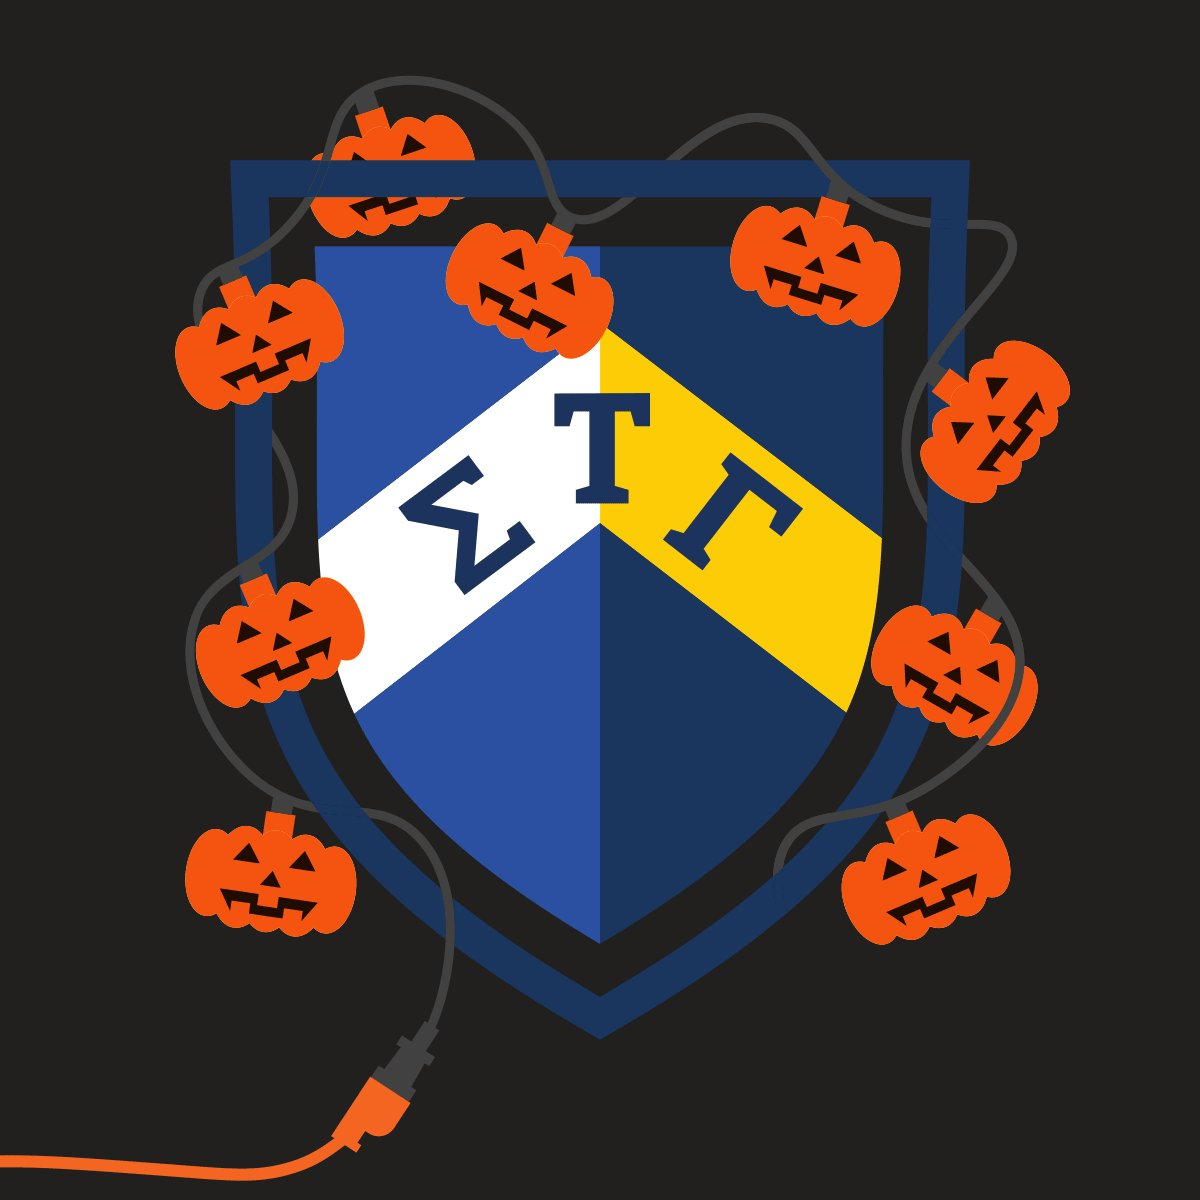 HAPPY HALLOWEEN Have a frightful day. #SigTau https://t.co/VAONl1RteQ